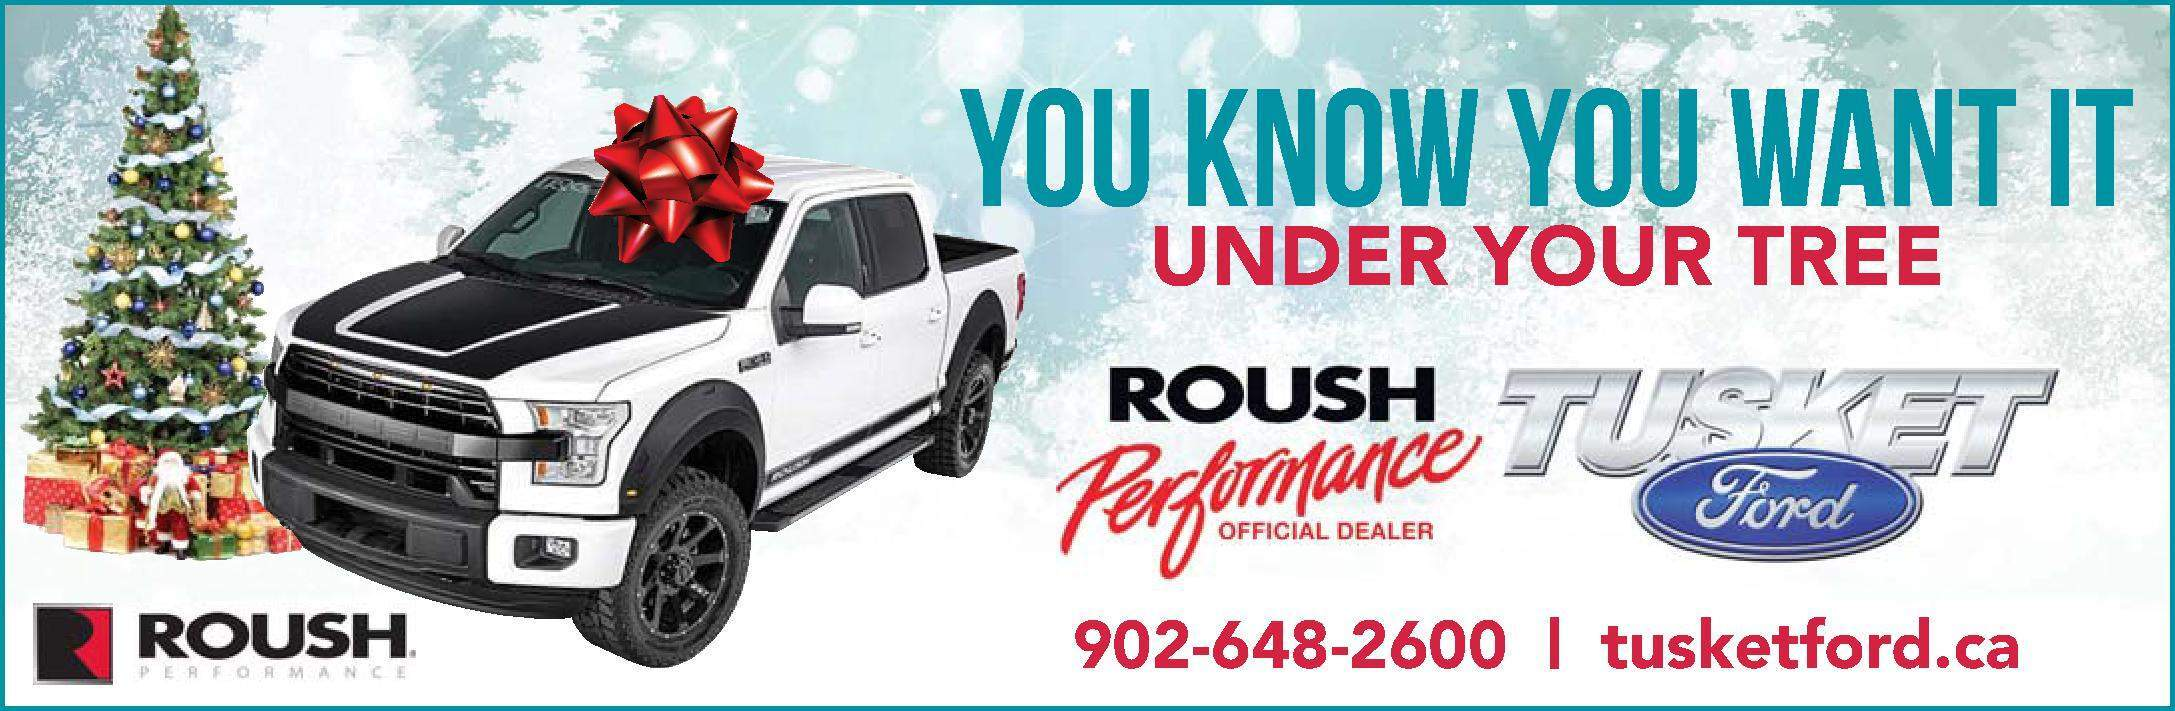 ROUSH Under the Tree